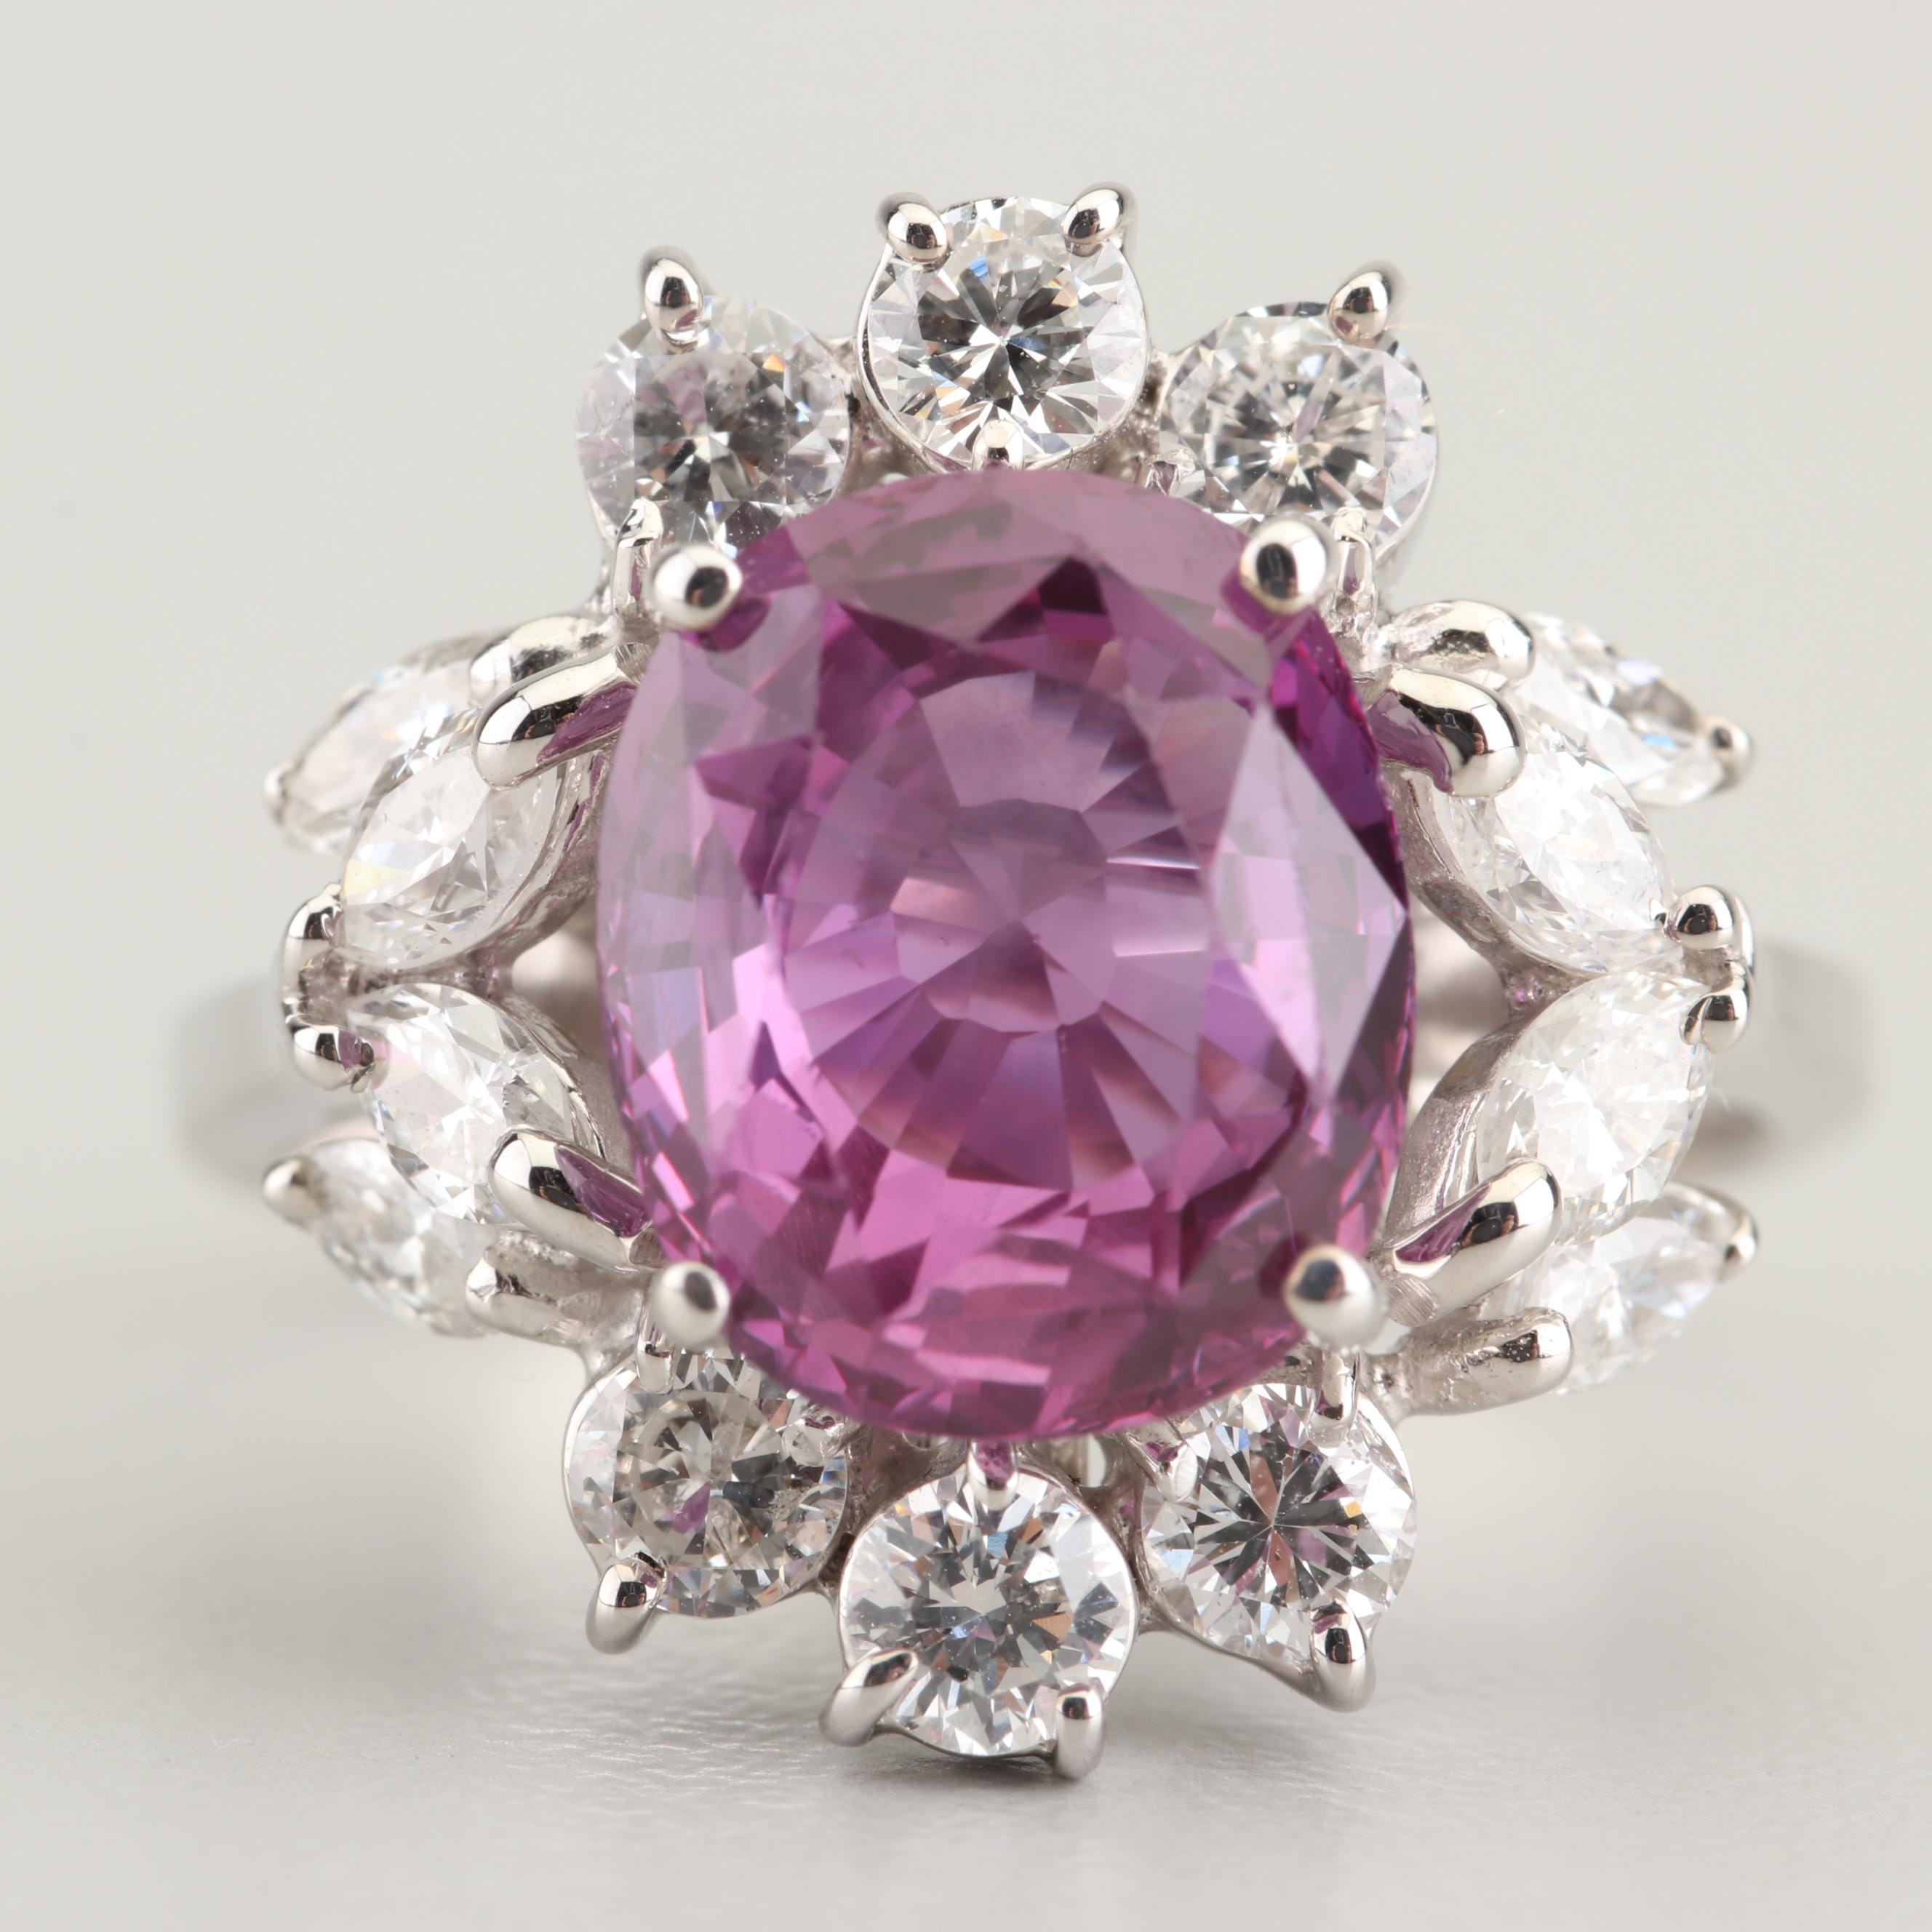 18K White Gold 4.20 CT Pink Sapphire and 1.25 CTW Diamond Ring with GIA Report